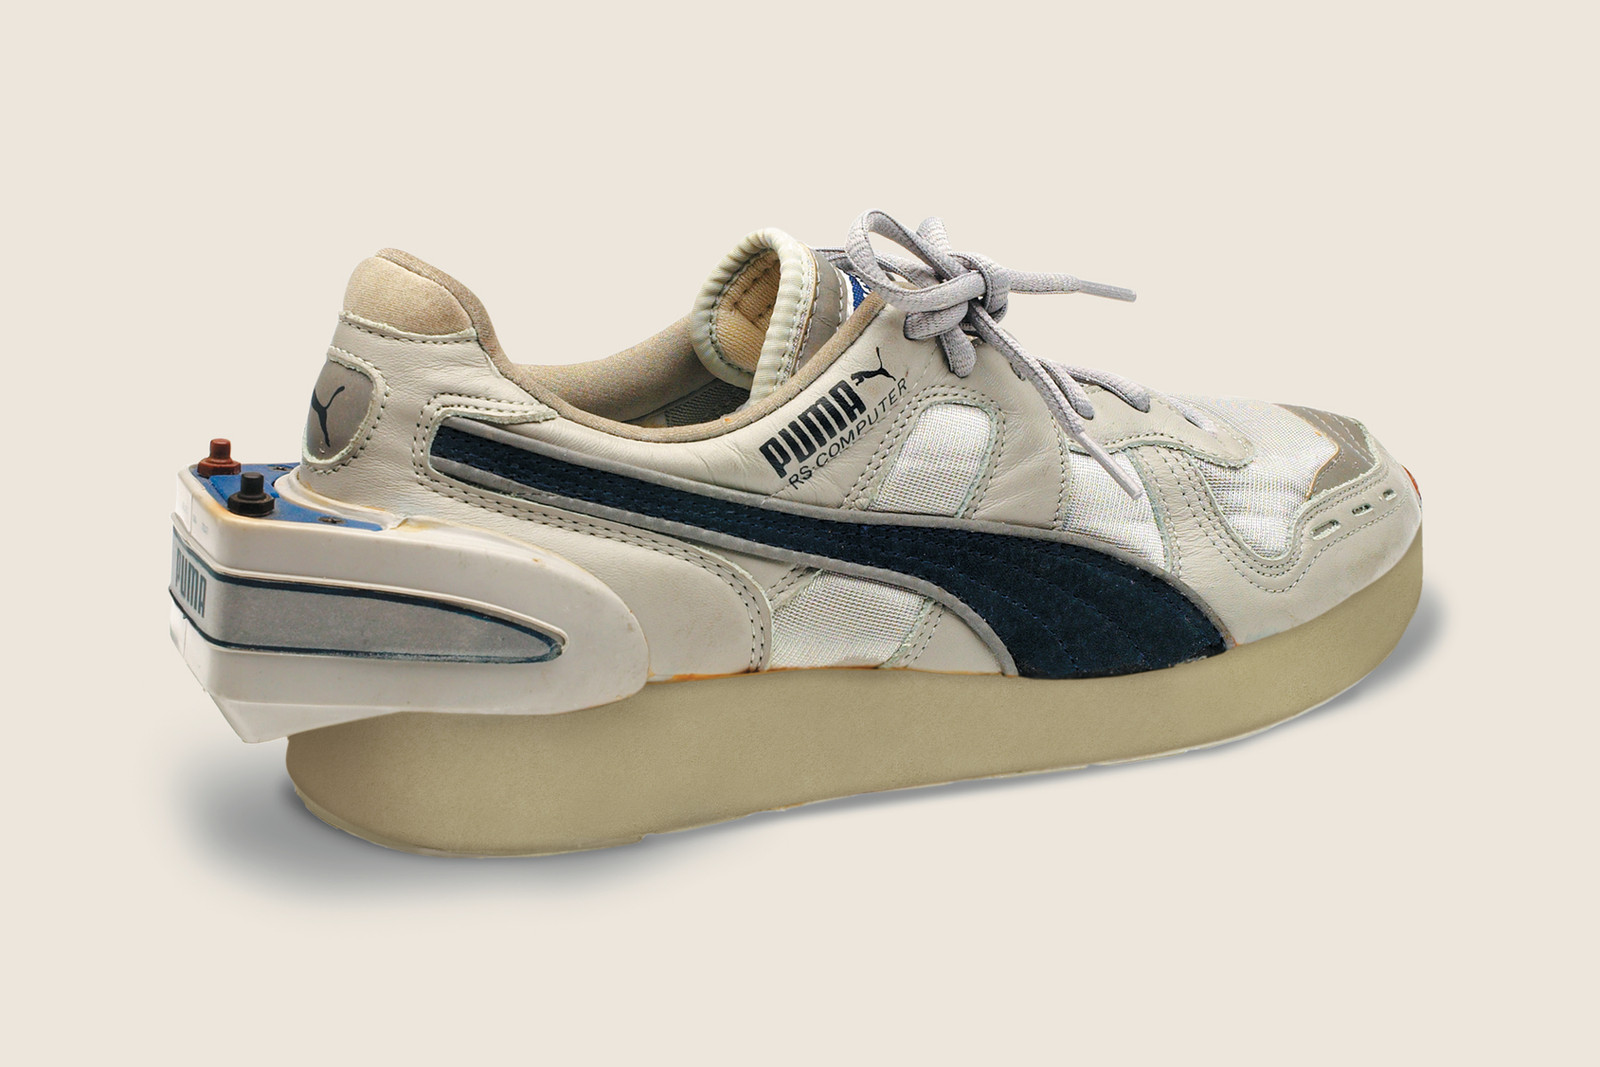 PUMA RS 0 RS Sytem Reboot spring summer 2018 release date info sneakers shoes footwear drop 1980 retro